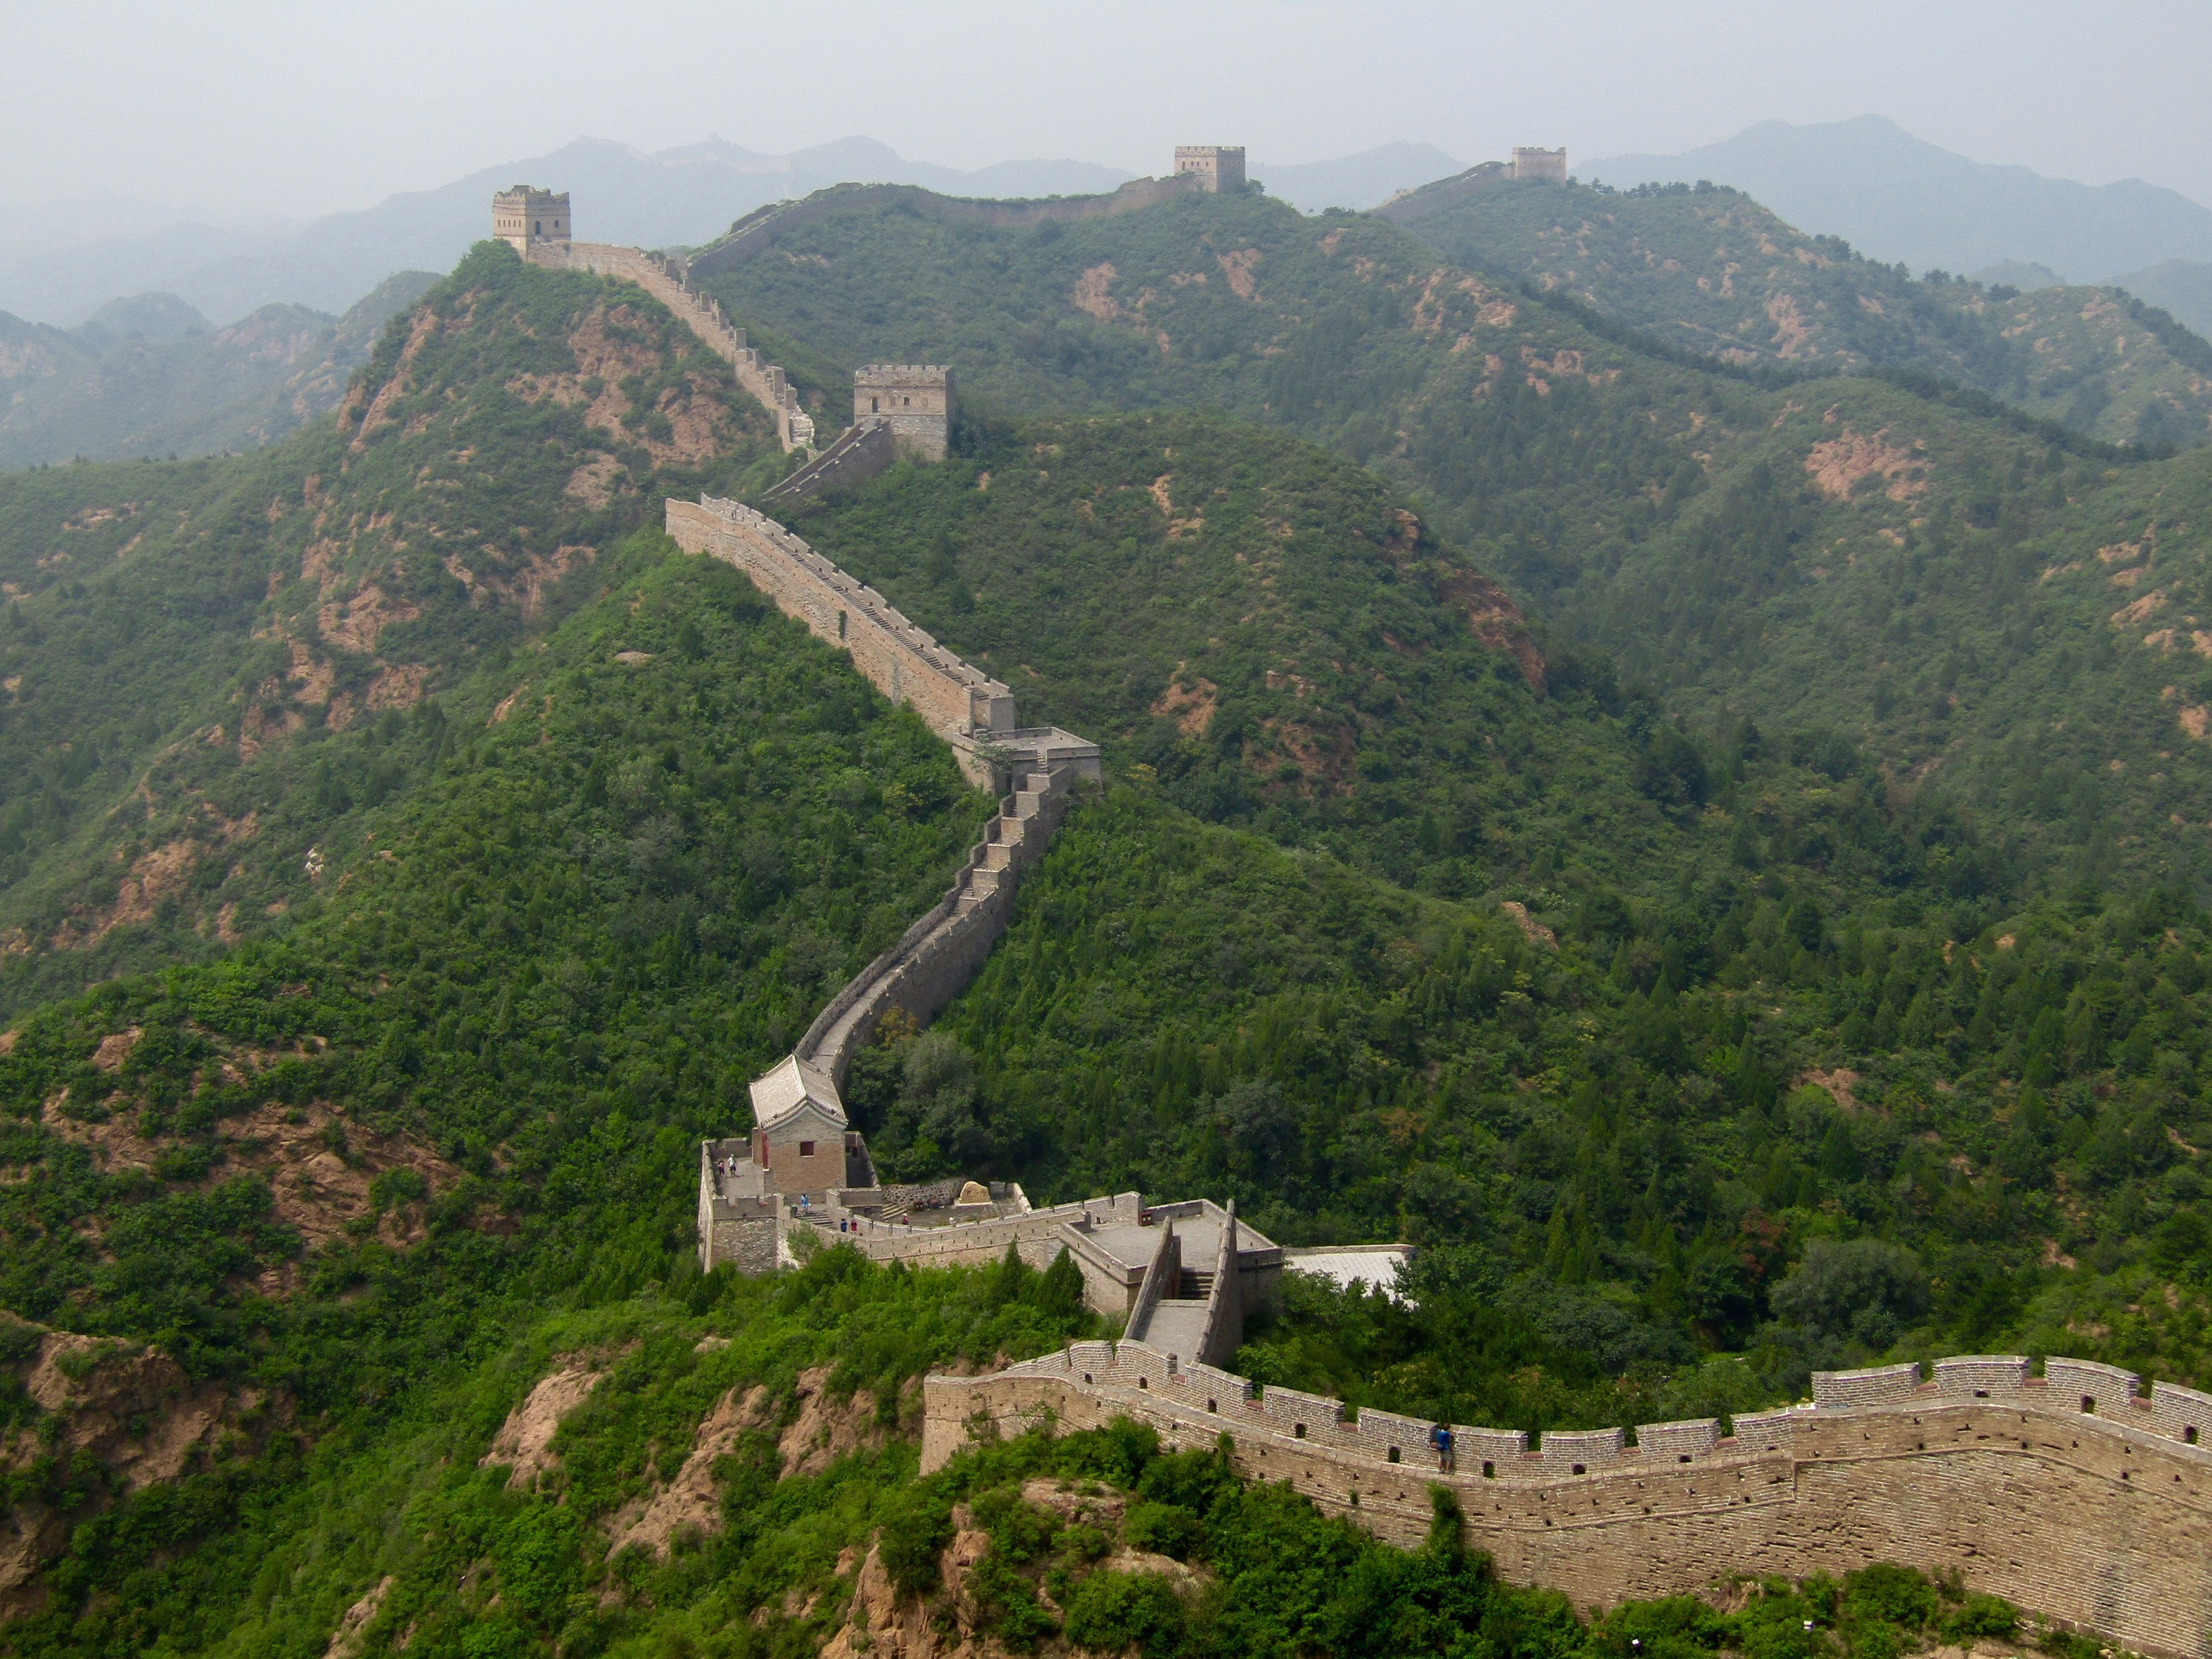 The wall literally stretches as far as the eyes can see, disappearing into the horizon.